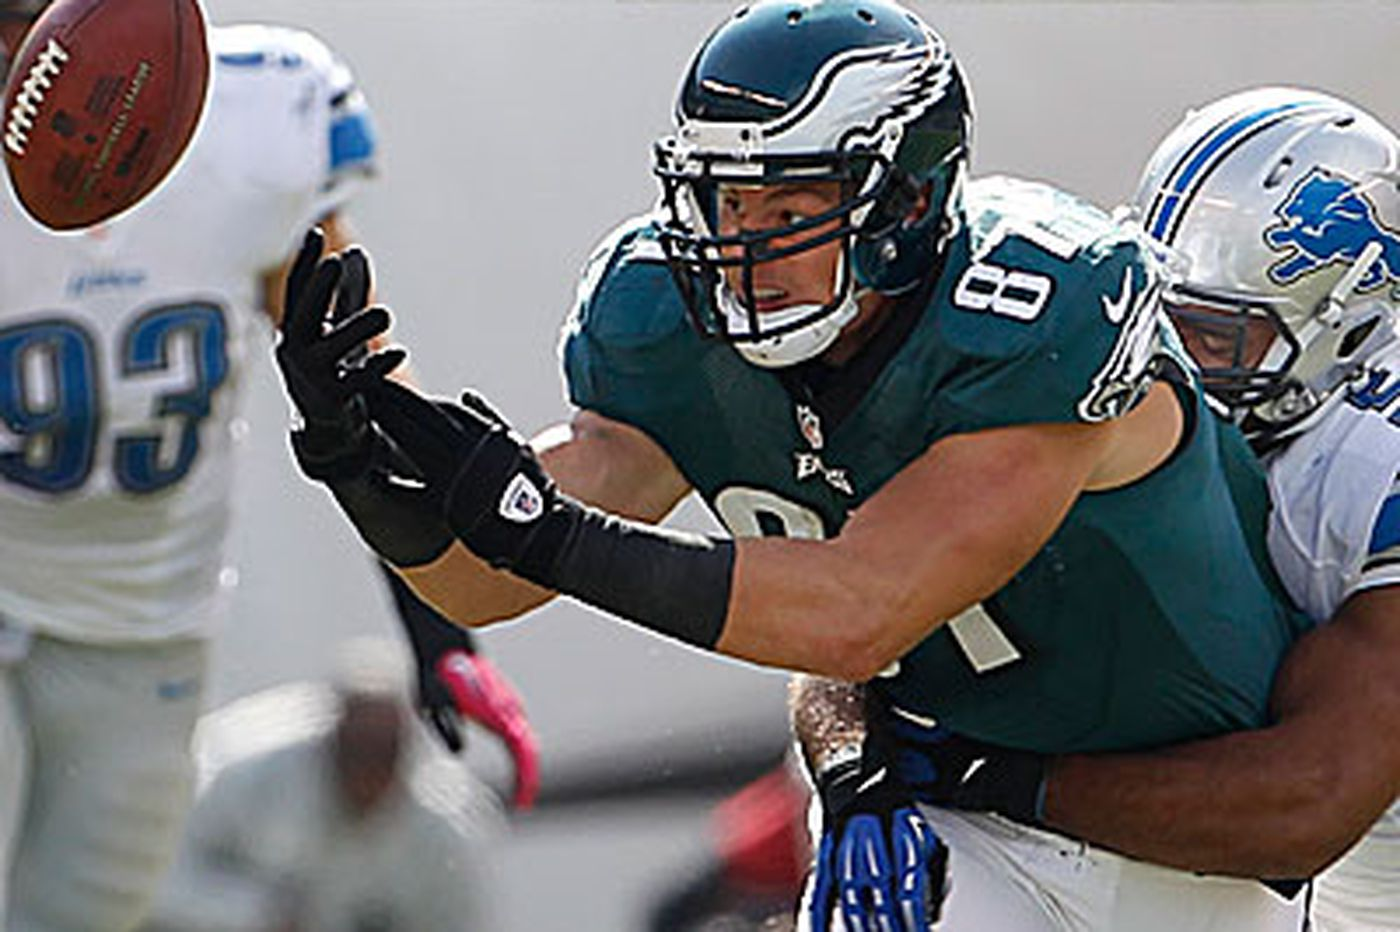 Marcus Hayes: Eagles' woes a tale of self-destruction